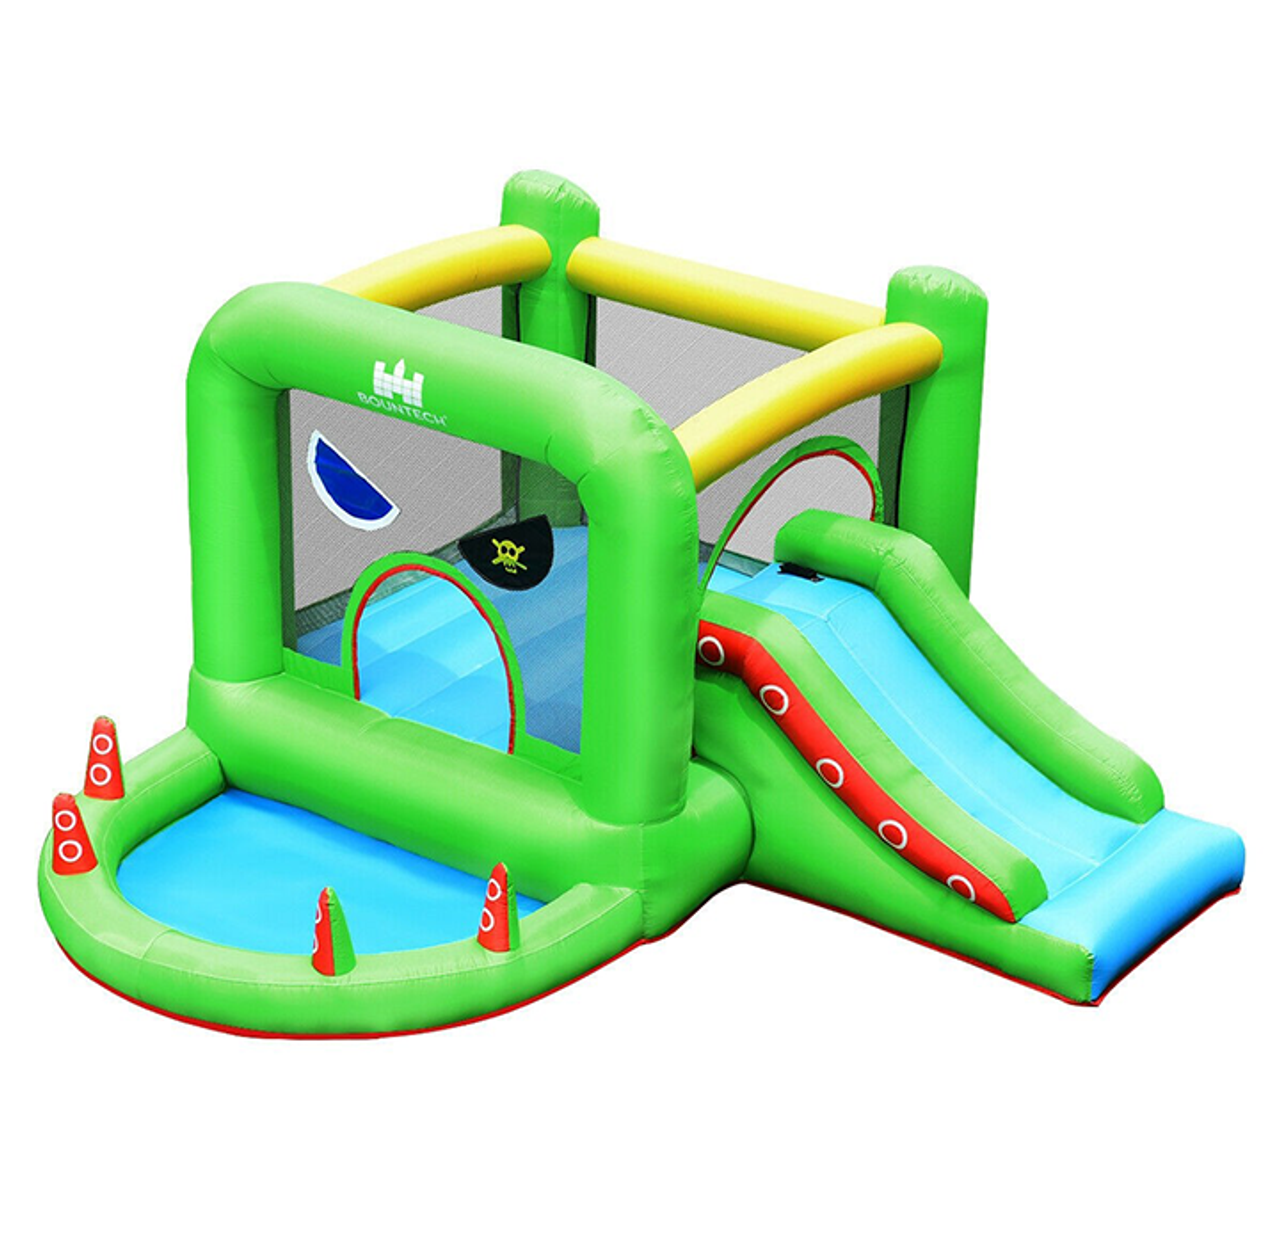 Portable Pirate Style Inflatable Bounce House! 9.99 (REG 9.99) + Free Shipping at Until Gone!